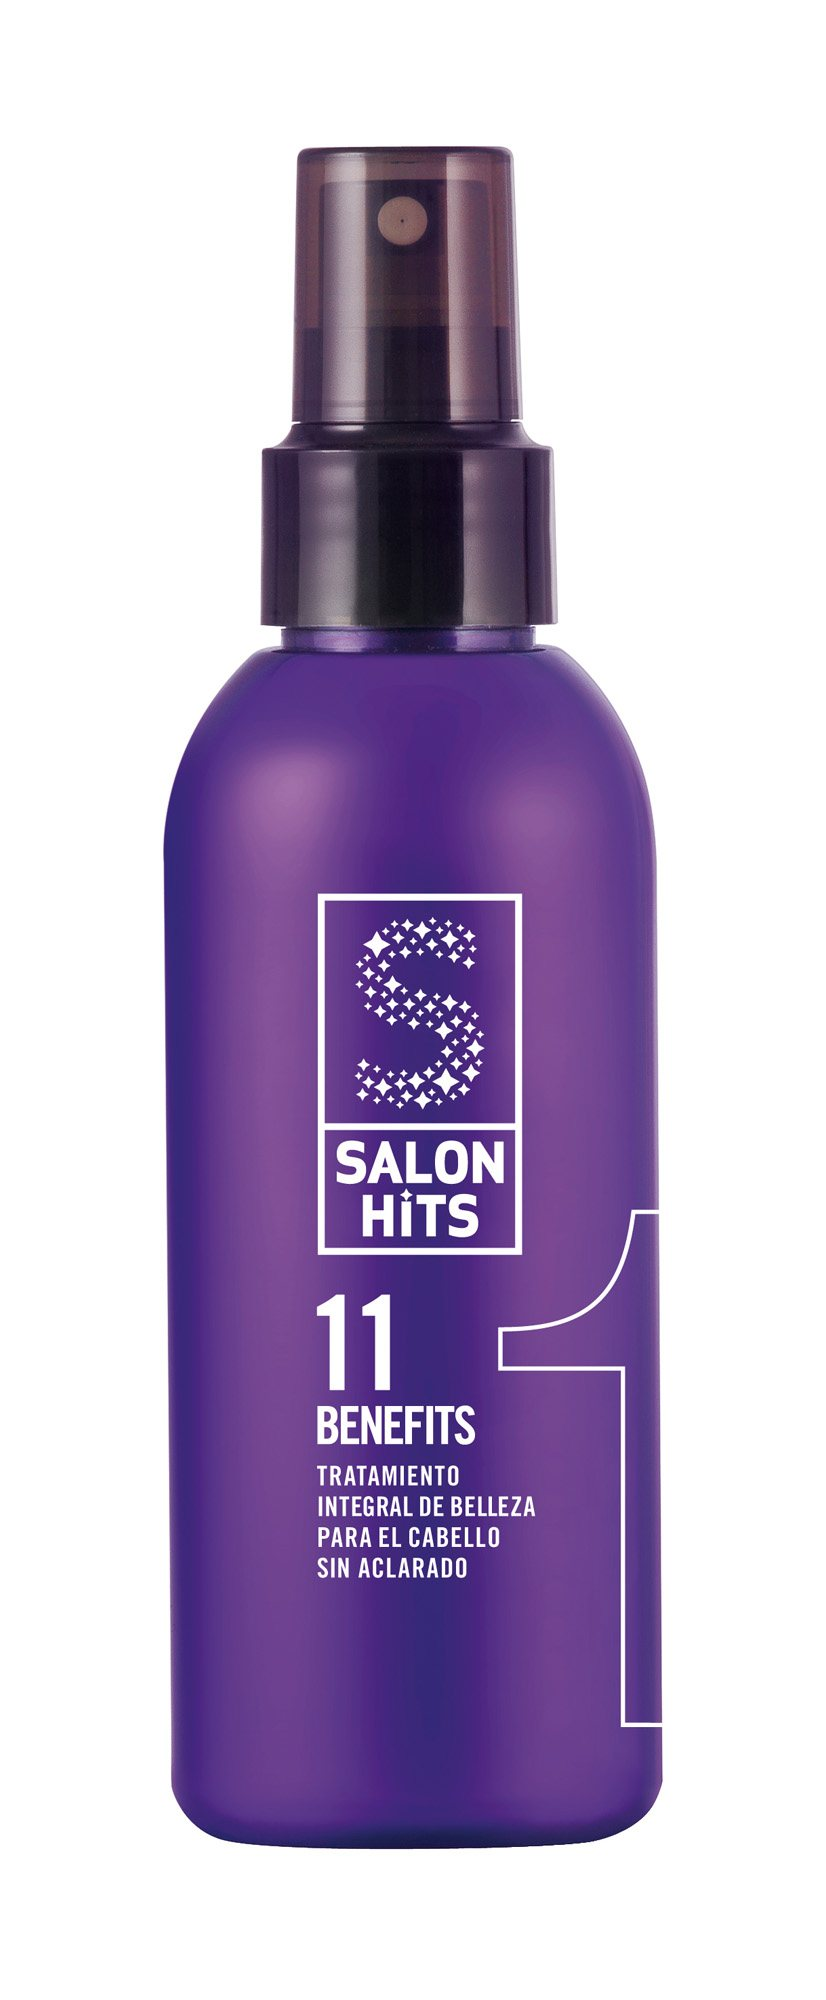 Salon Hits 11 Benefits. SALON HITS 11 BENEFITS